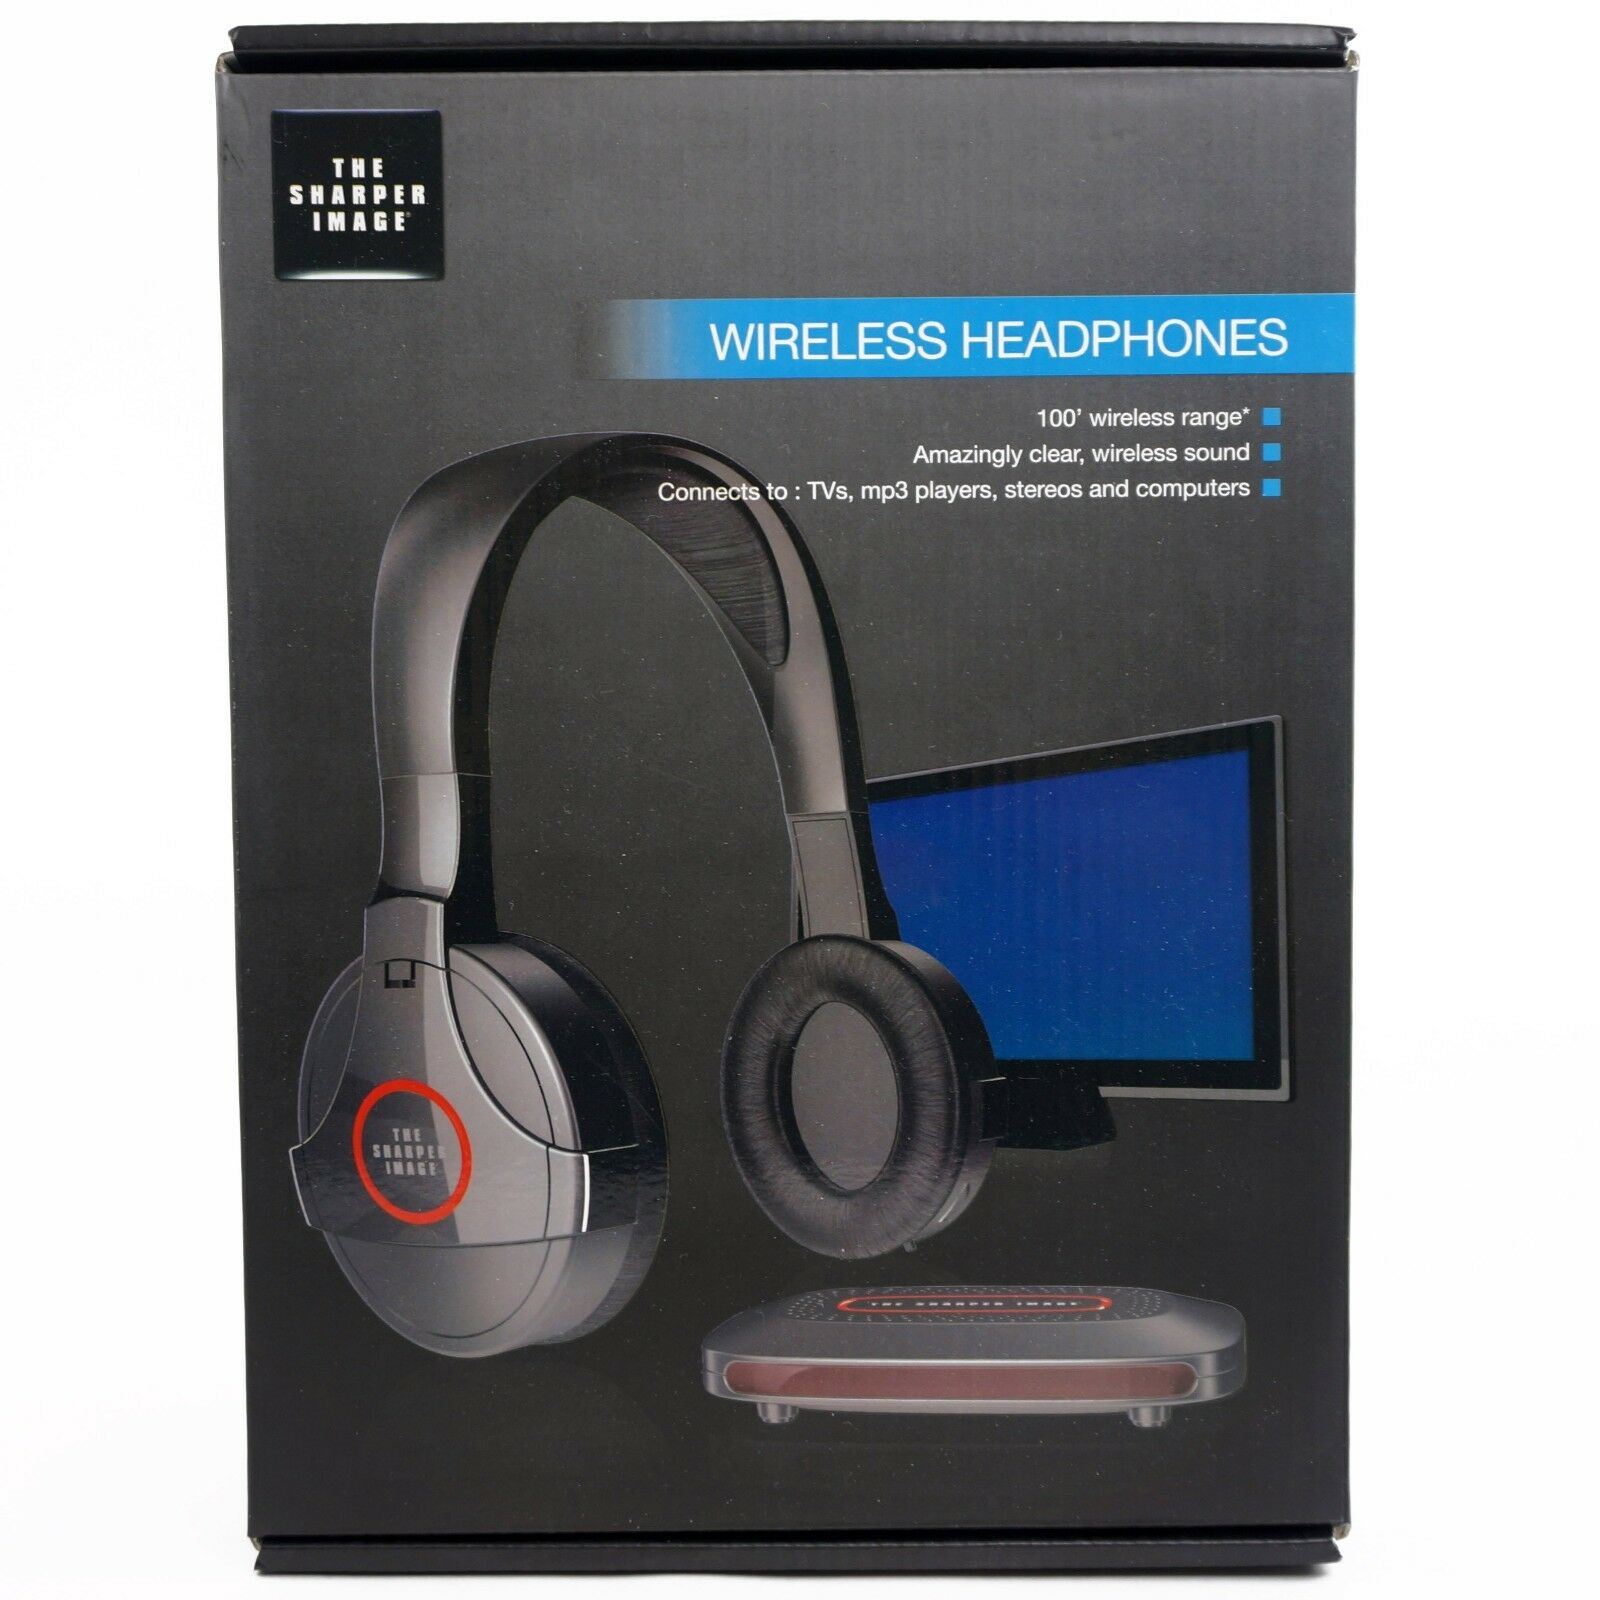 Sharp Wireless Headphone Wireless Headphones Black Ebay